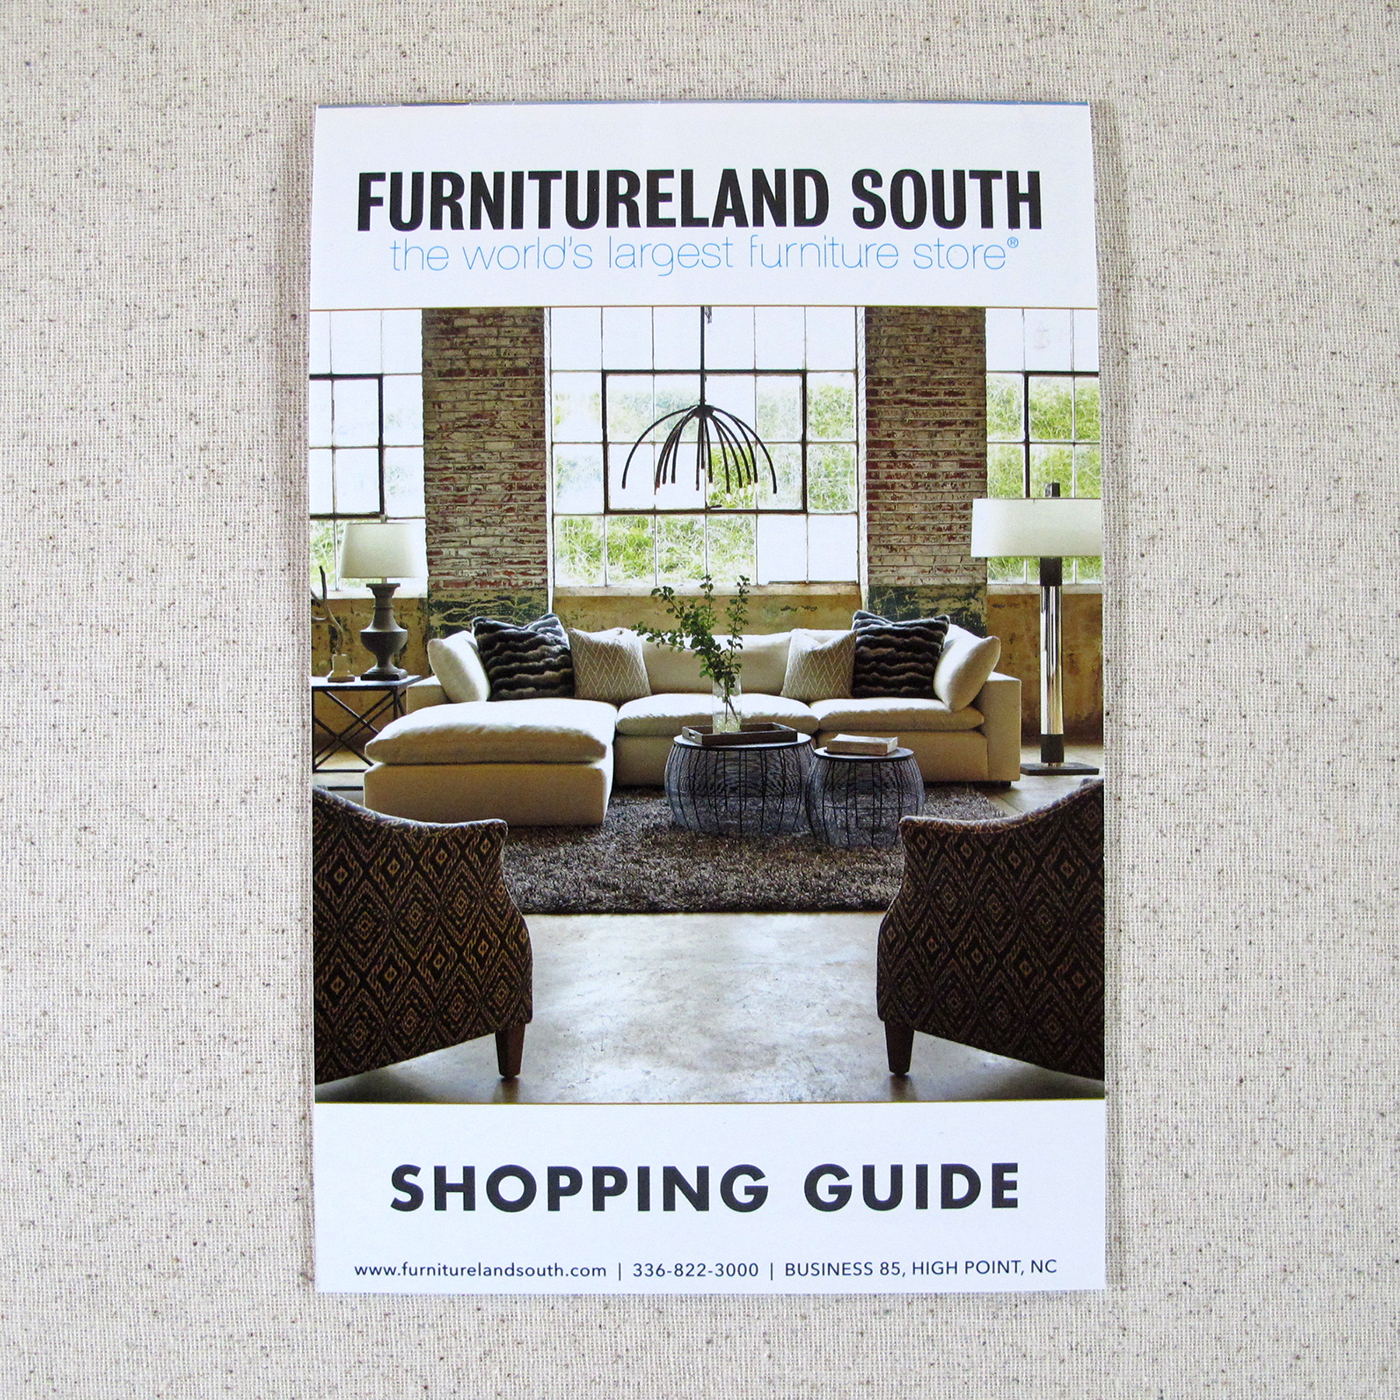 Furnitureland South Shopping Guide On Behance